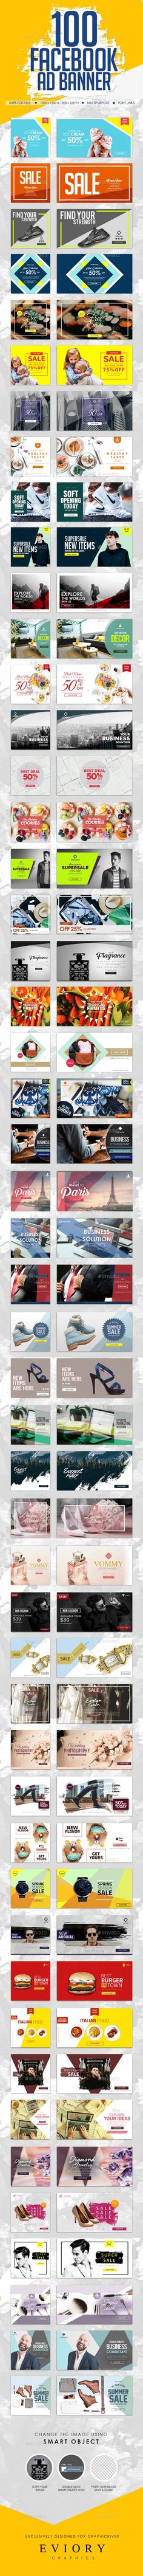 Facebook Ad Banners — Photoshop PSD #ecommerce #shop • Available here ➝ https://graphicriver.net/item/facebook-ad-banners/20632228?ref=pxcr